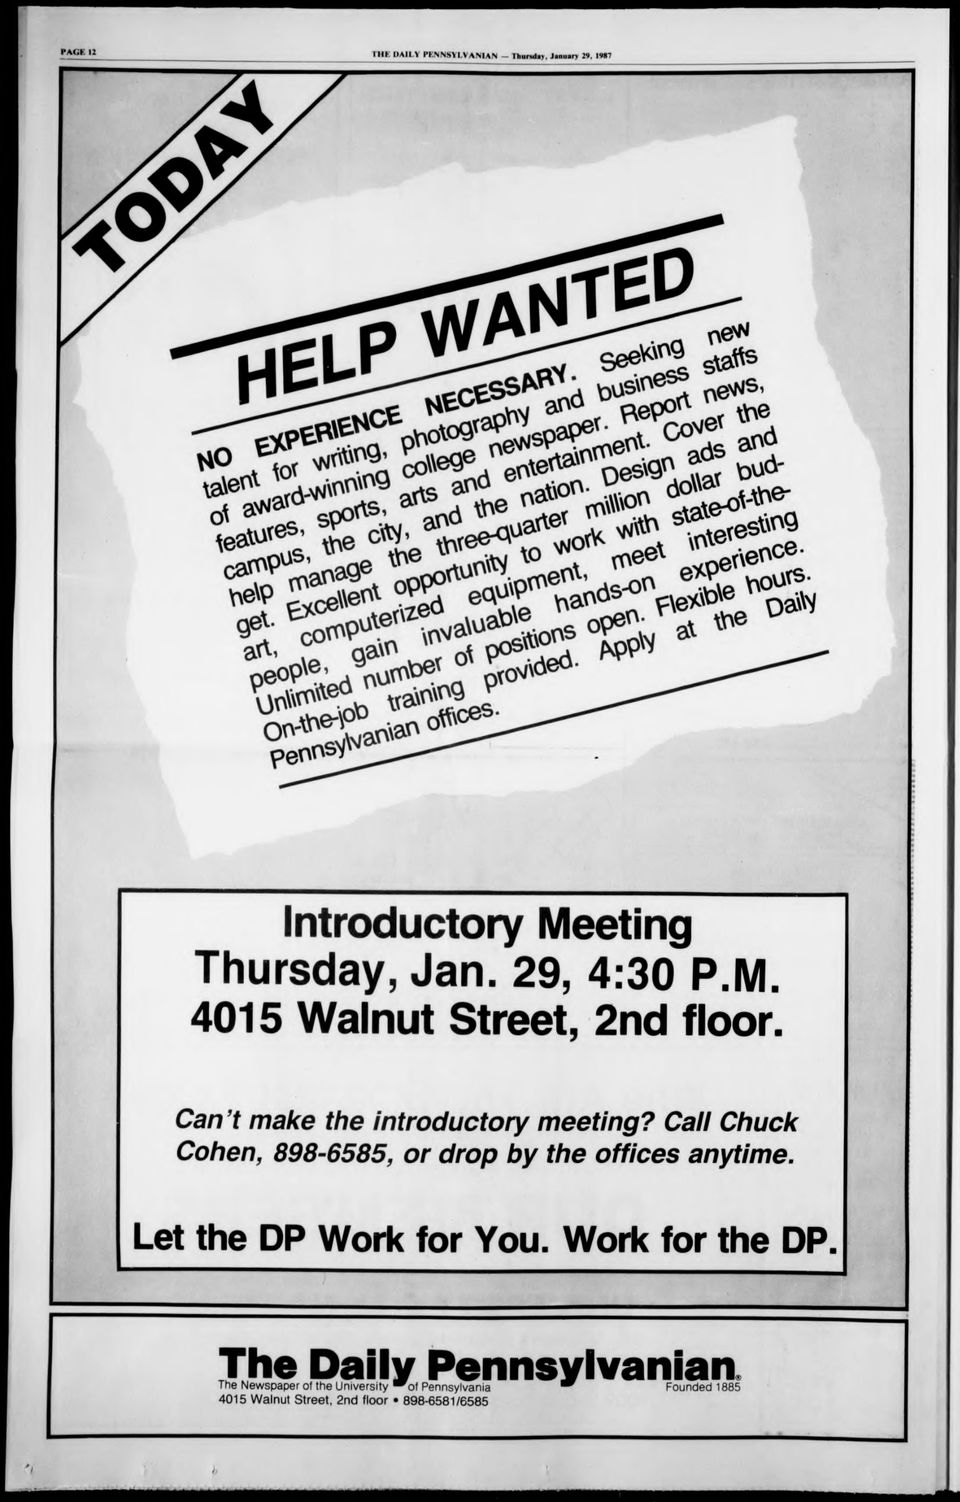 Can't make the introductory meeting? Call Chuck Cohen, 898-6585, or drop by the offices anytime. Let the DP Work for You.